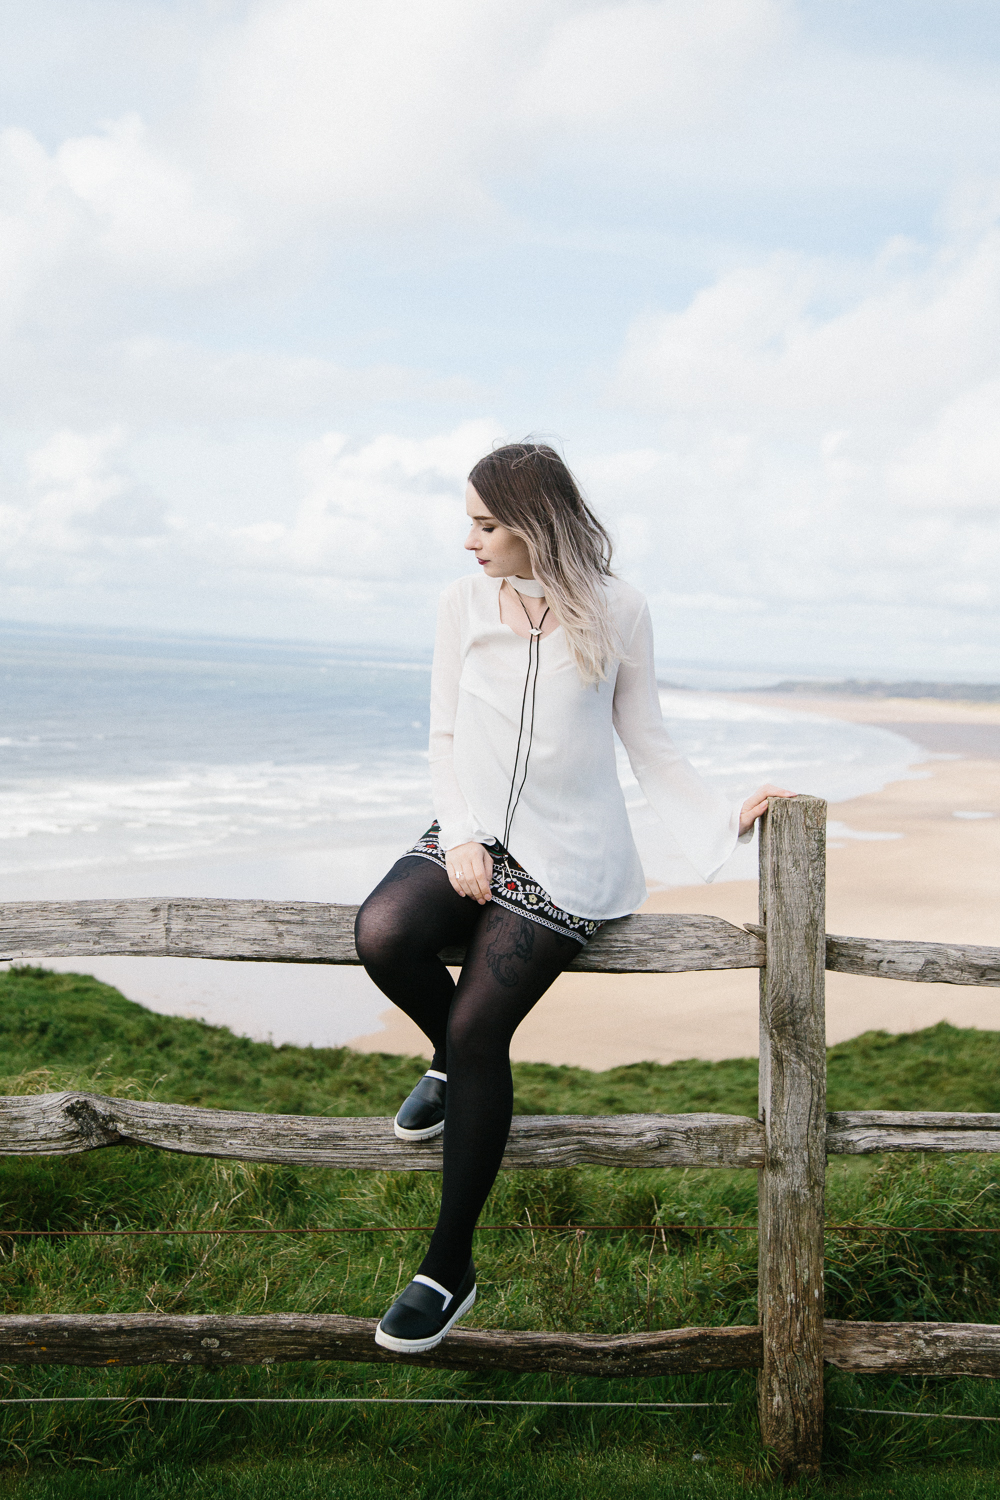 Monochrome Autumn Outfit Embroidery Trend